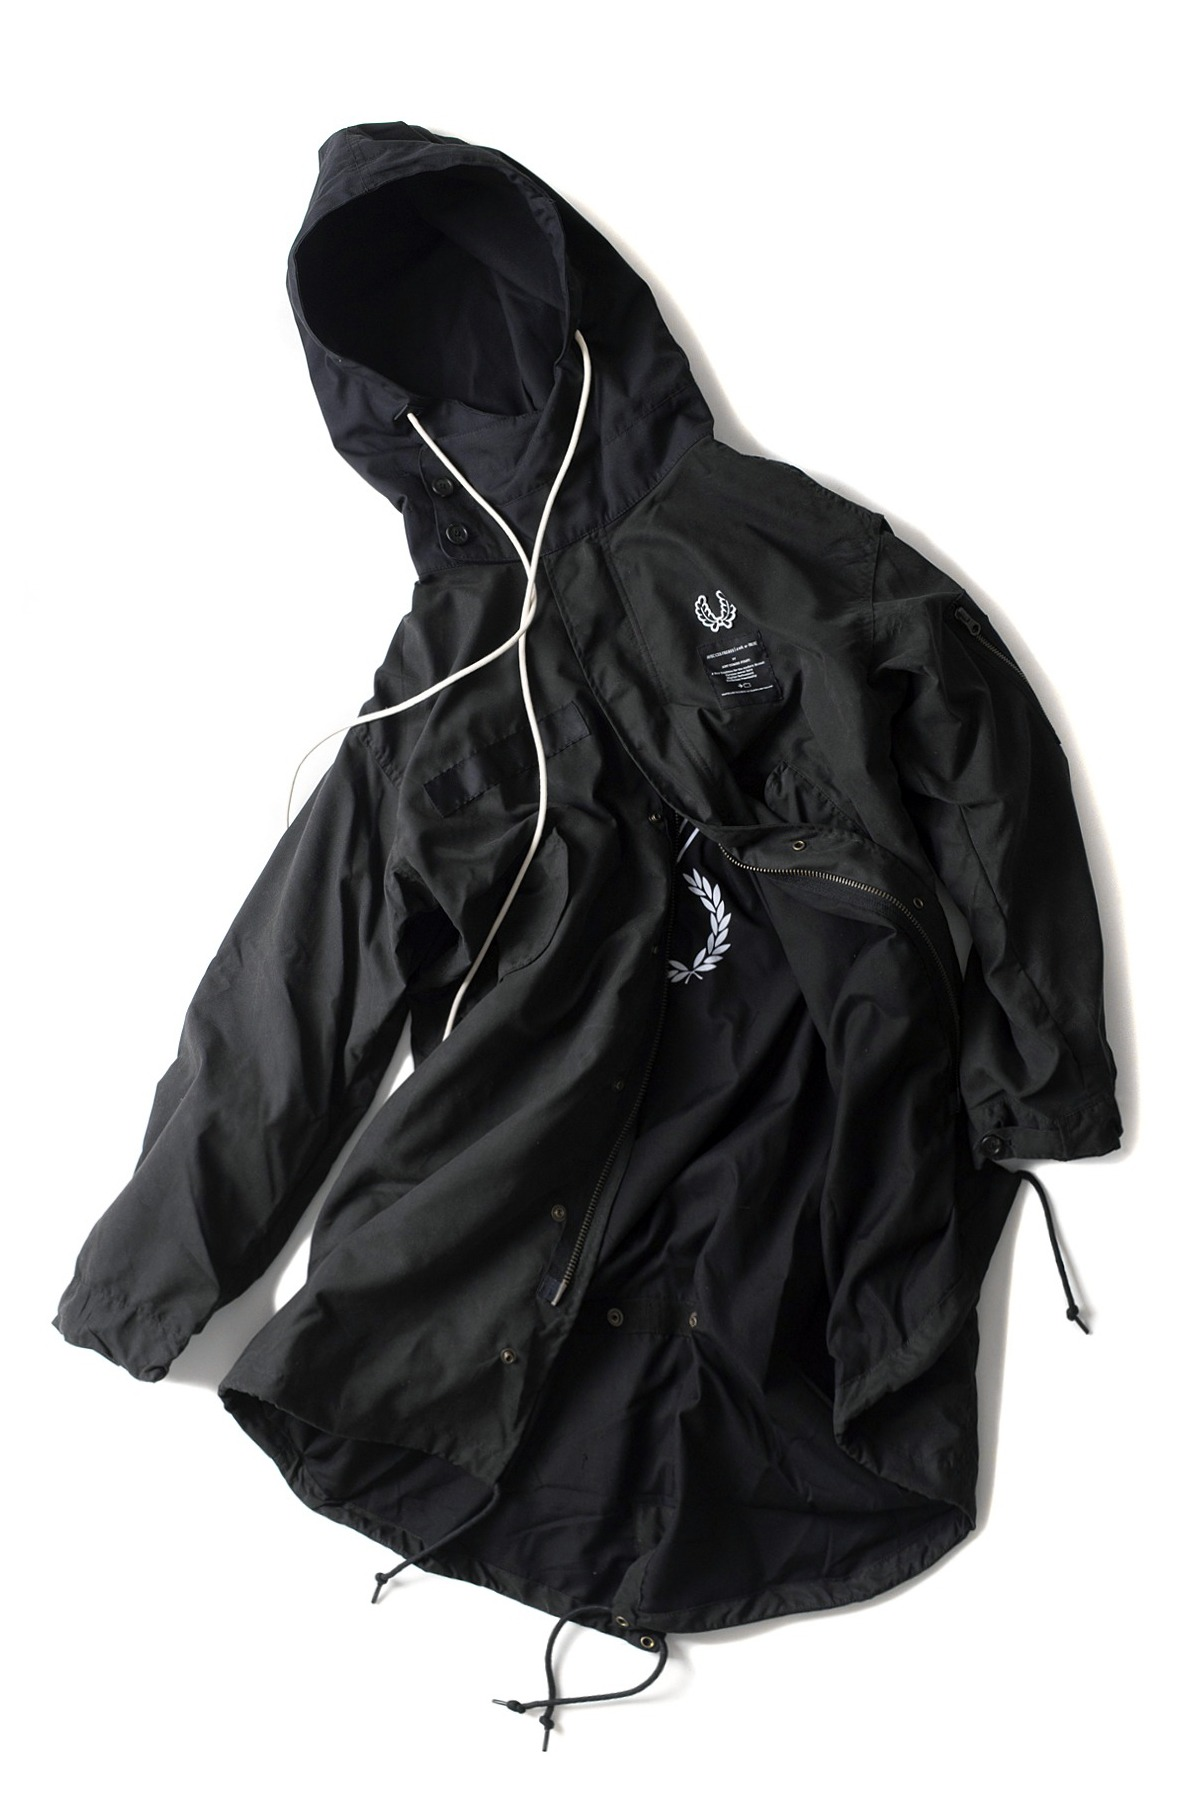 FRED PERRY x ART COMES FIRST : Printed Parka (Black)